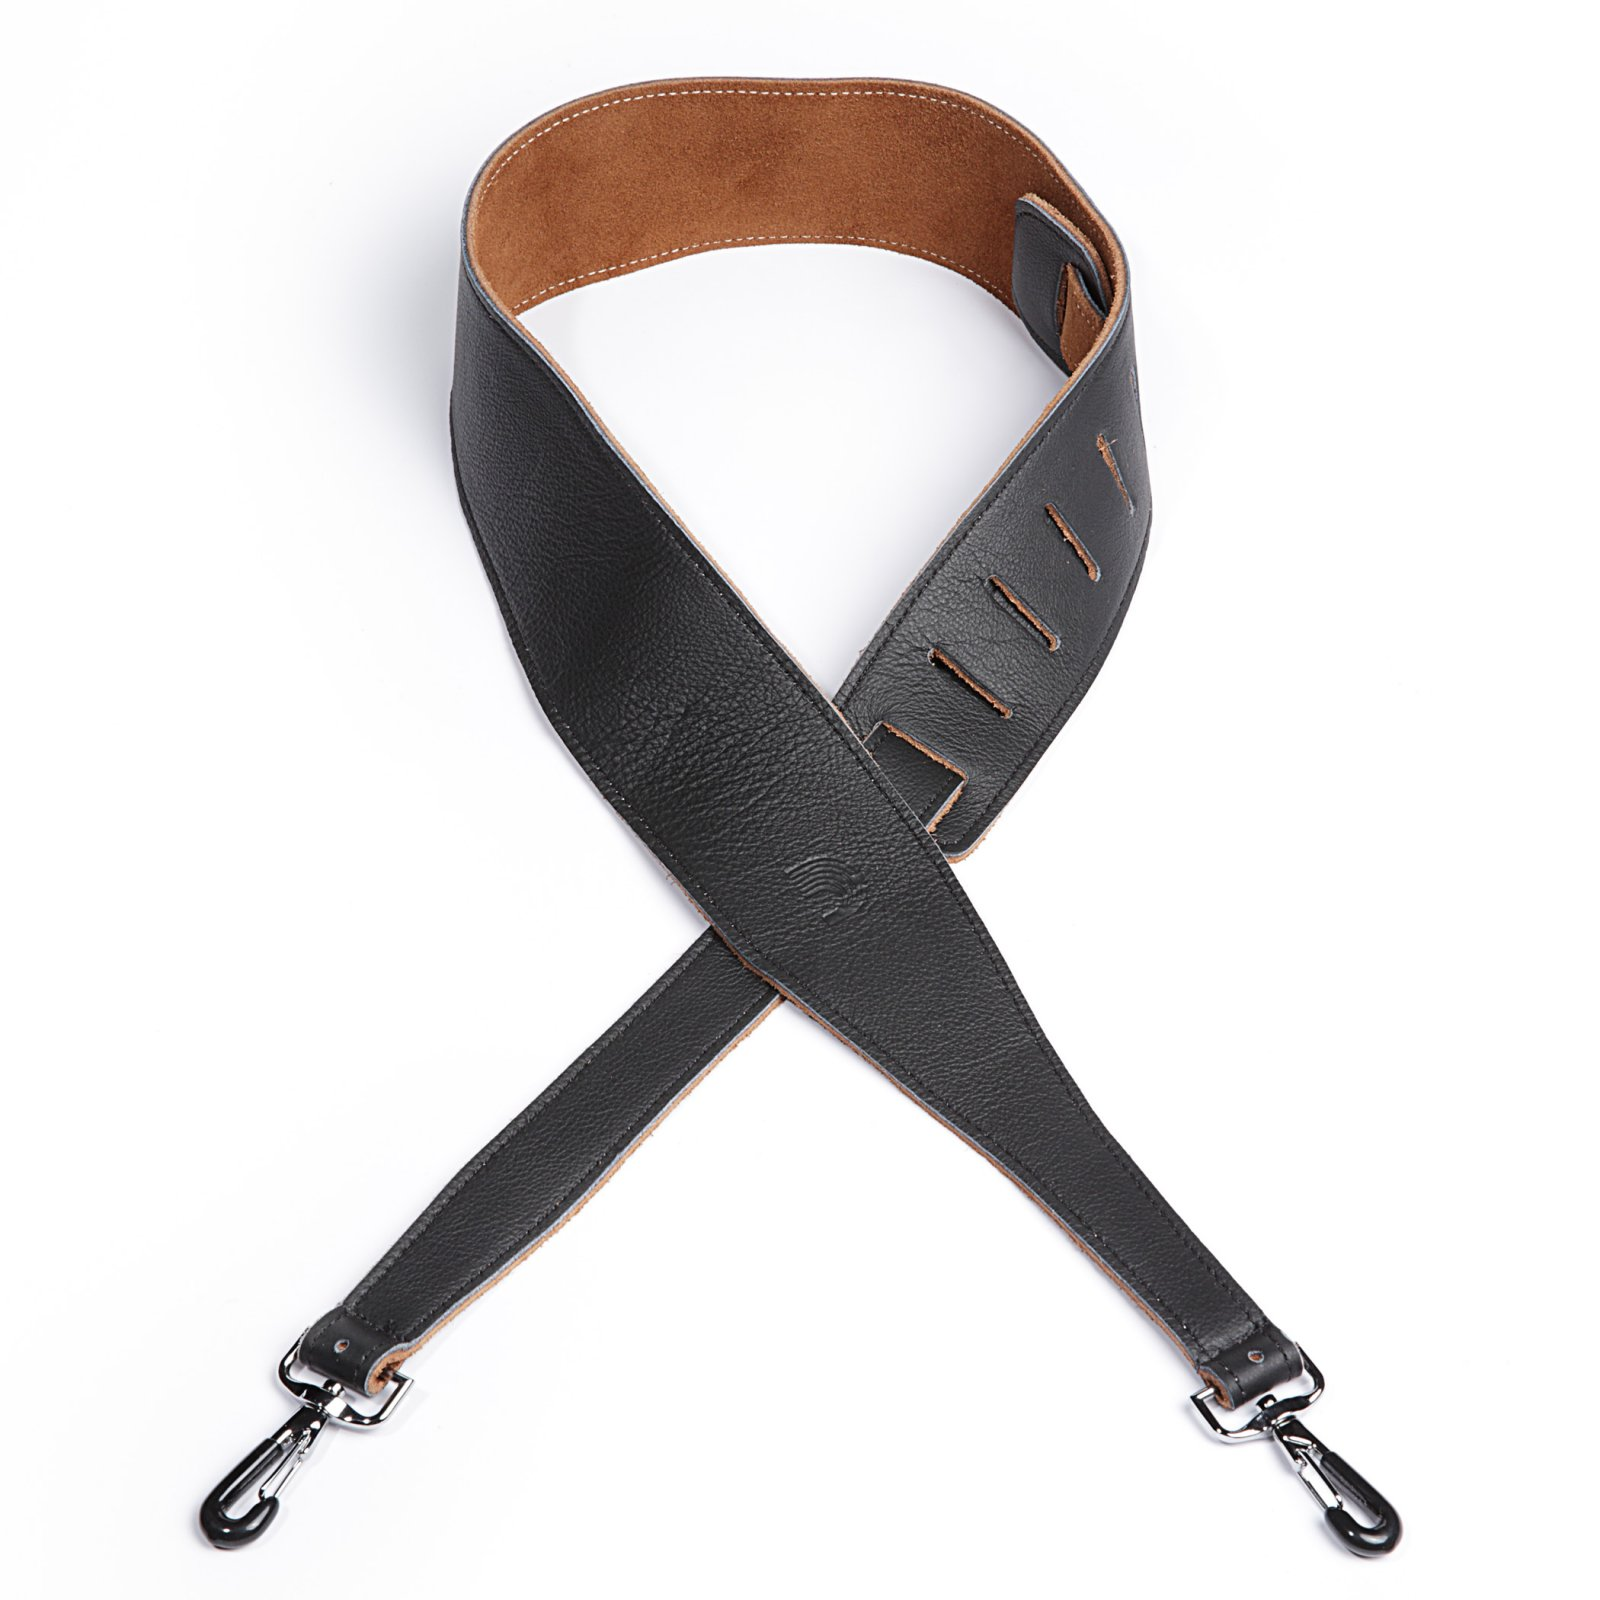 D'Addario/Planet Waves Garment Leather Banjo Strap with Coated Metal Hooks 25SLBNJ02-DX